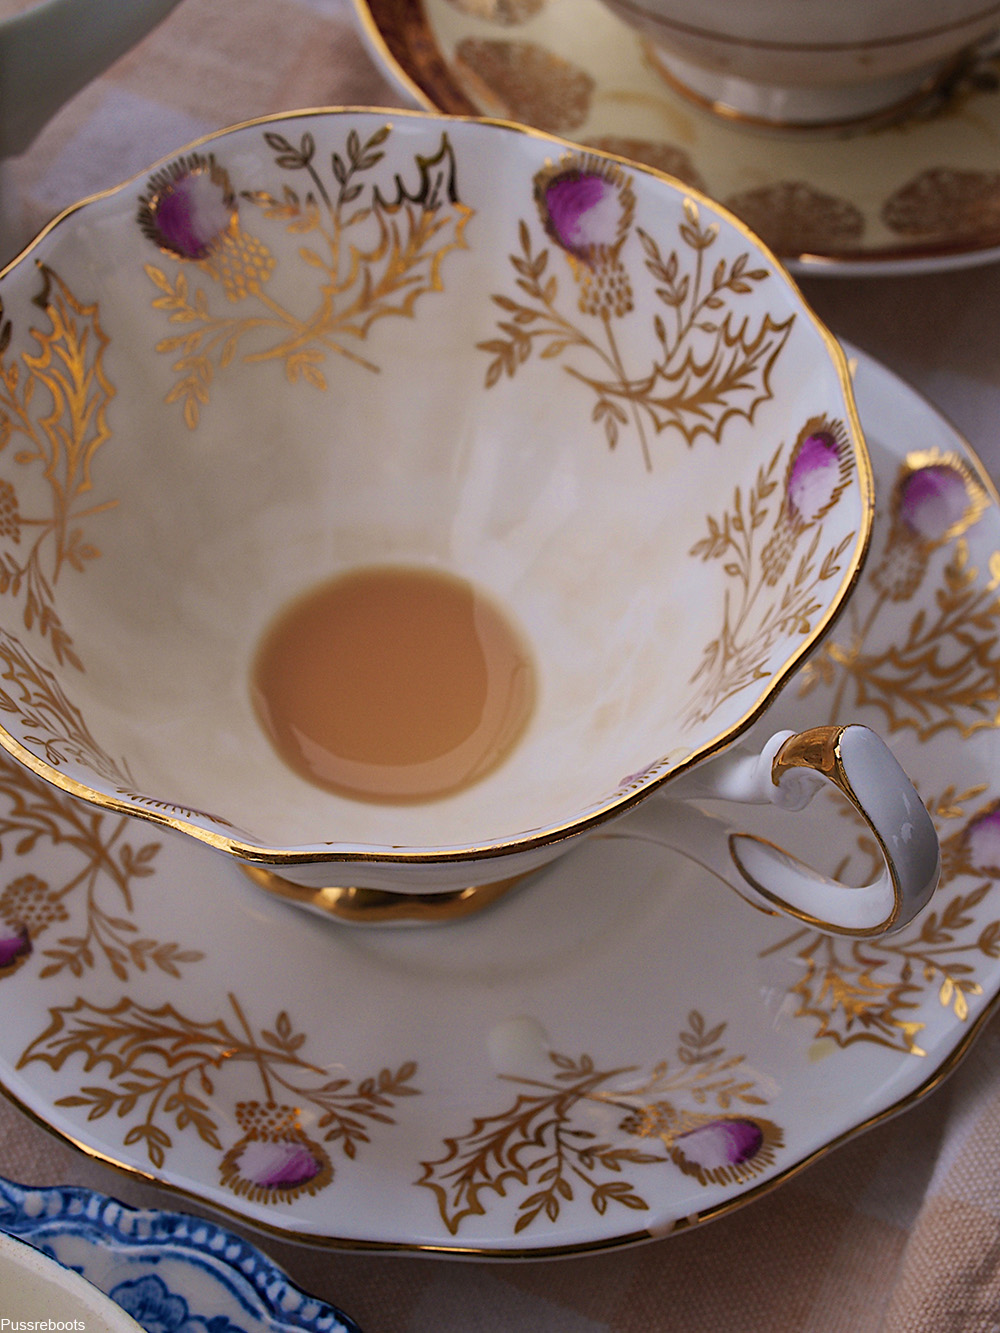 lustreware teacup and saucer